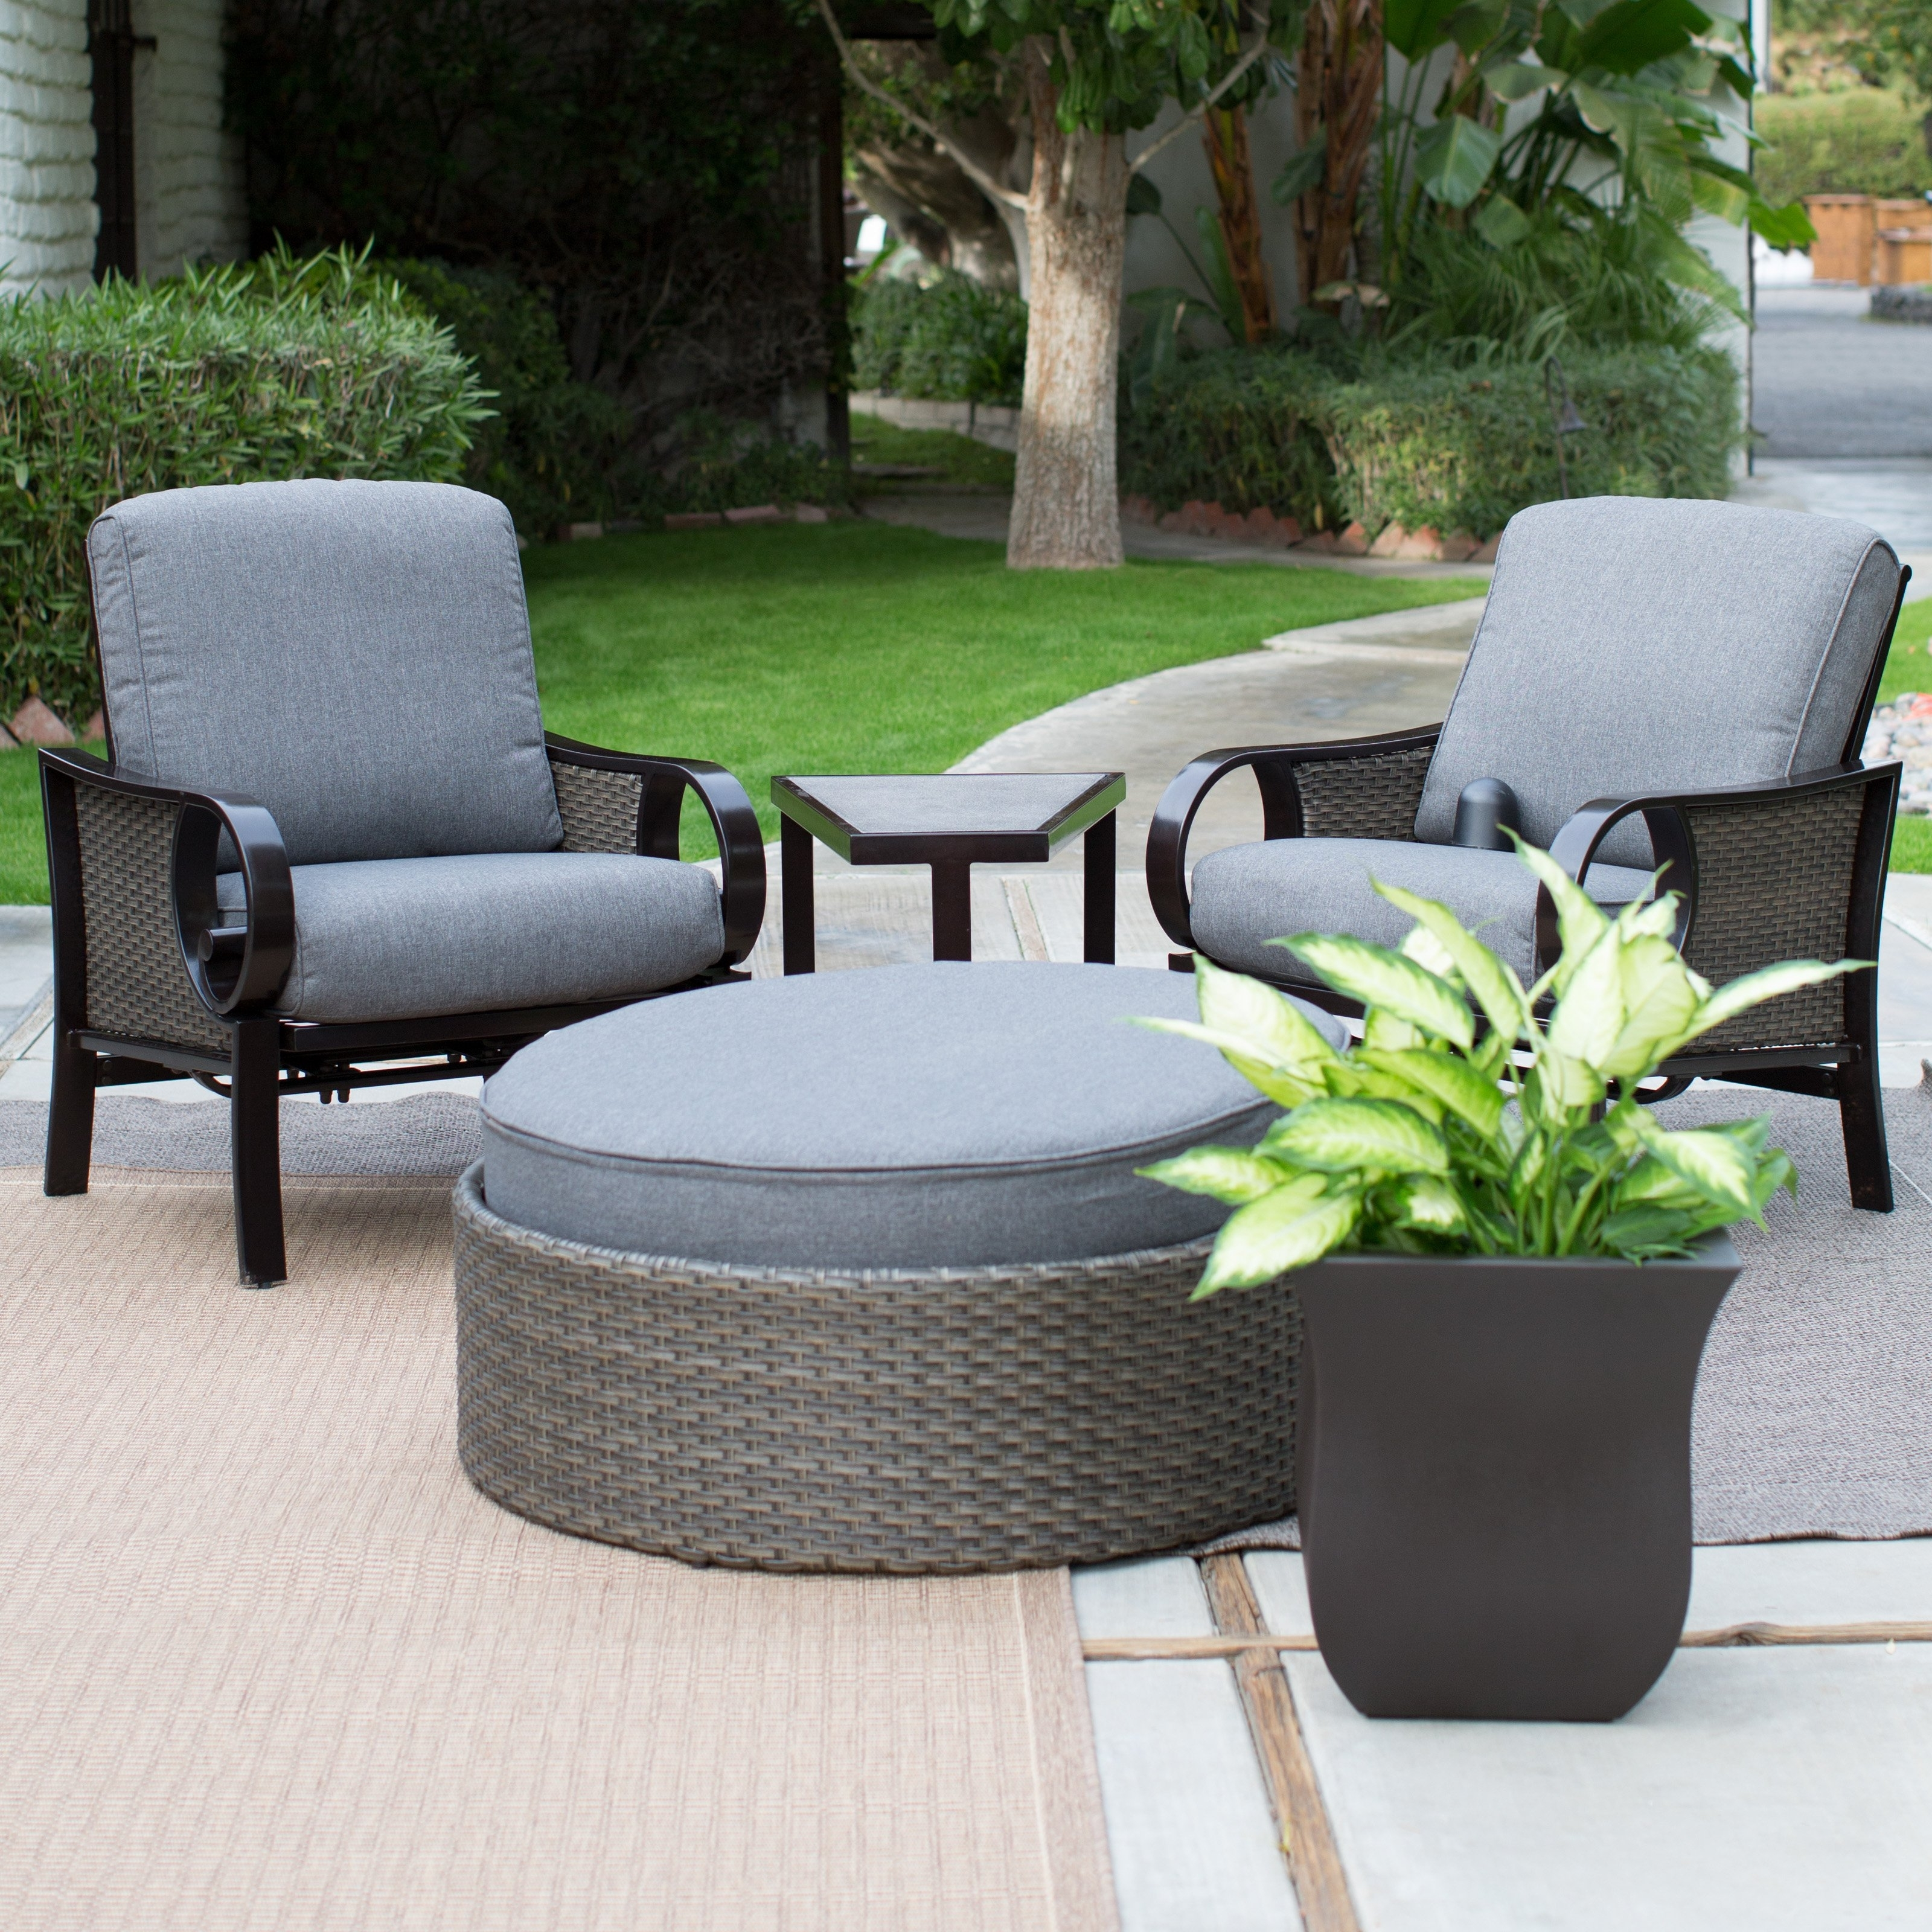 22 Creative Patio Conversation Sets With Ottoman – Pixelmari Throughout Well Known Patio Conversation Sets With Ottoman (View 1 of 15)